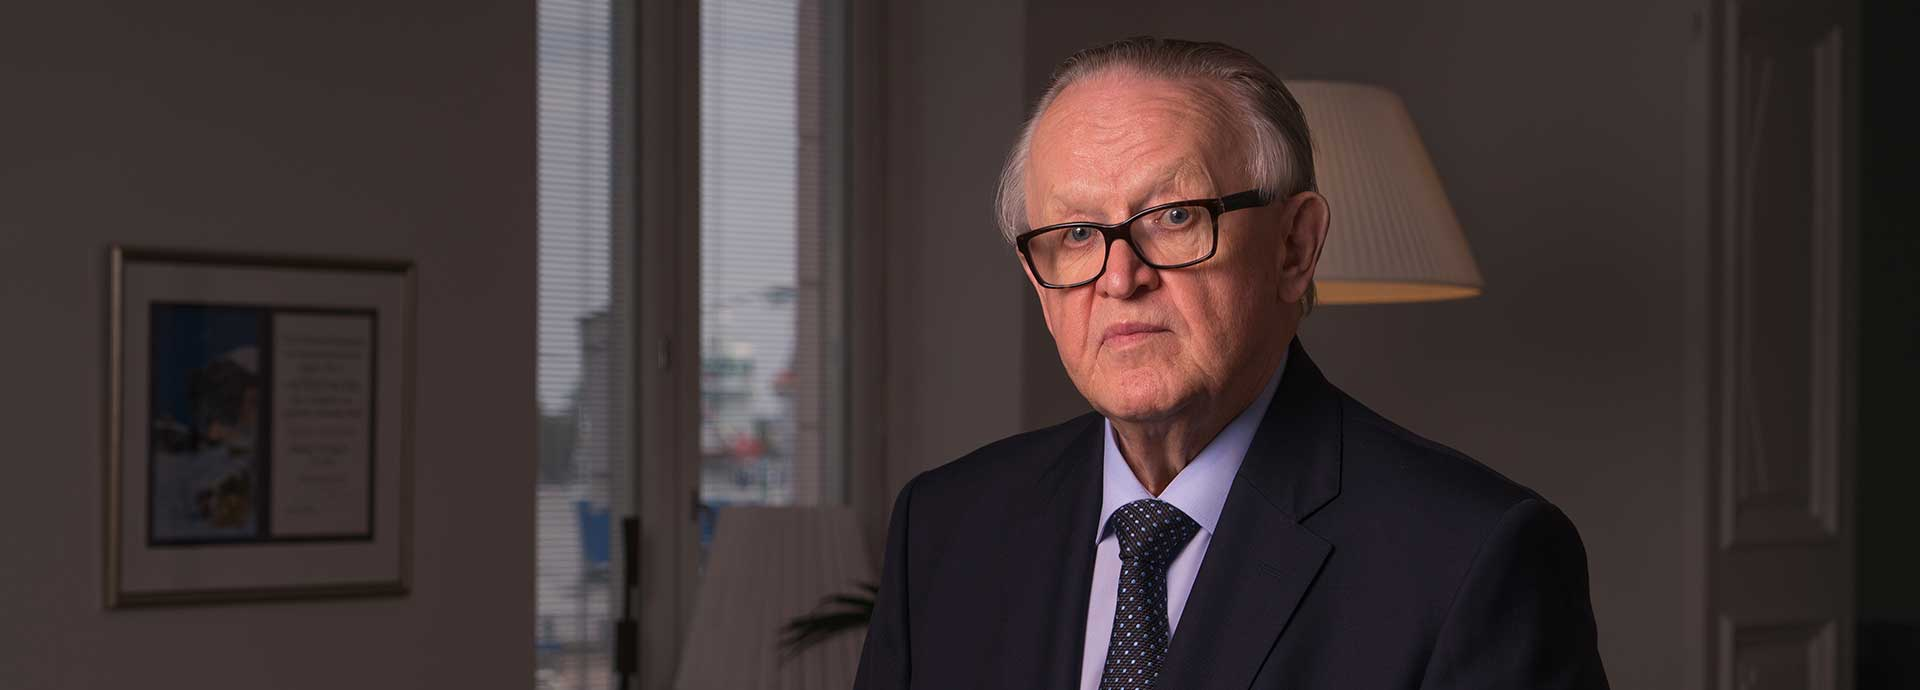 Podcast: Talking peace with Martti Ahtisaari